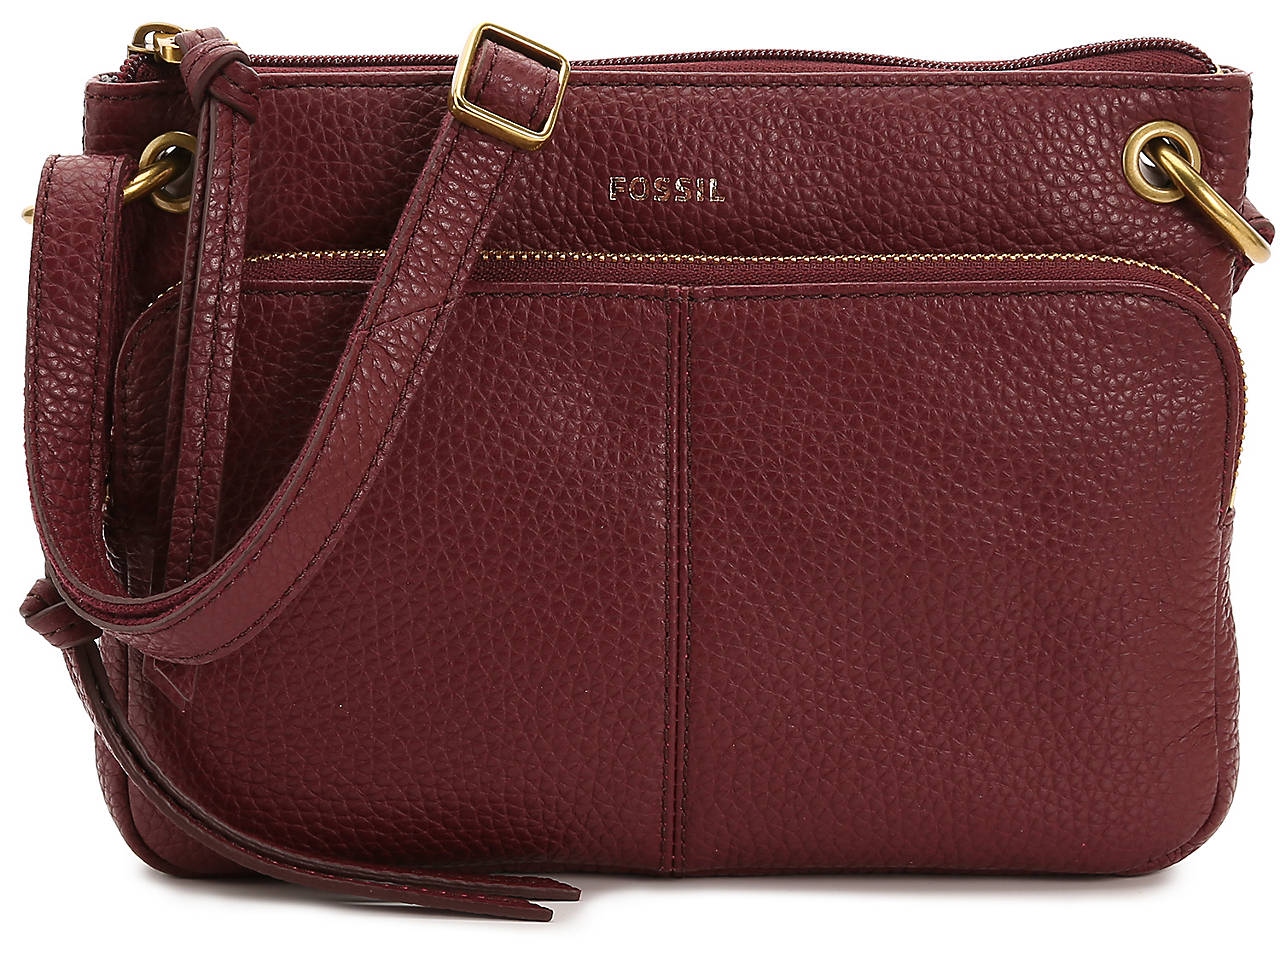 8217420be13a Fossil Karli Leather Crossbody Bag Women's Handbags & Accessories | DSW